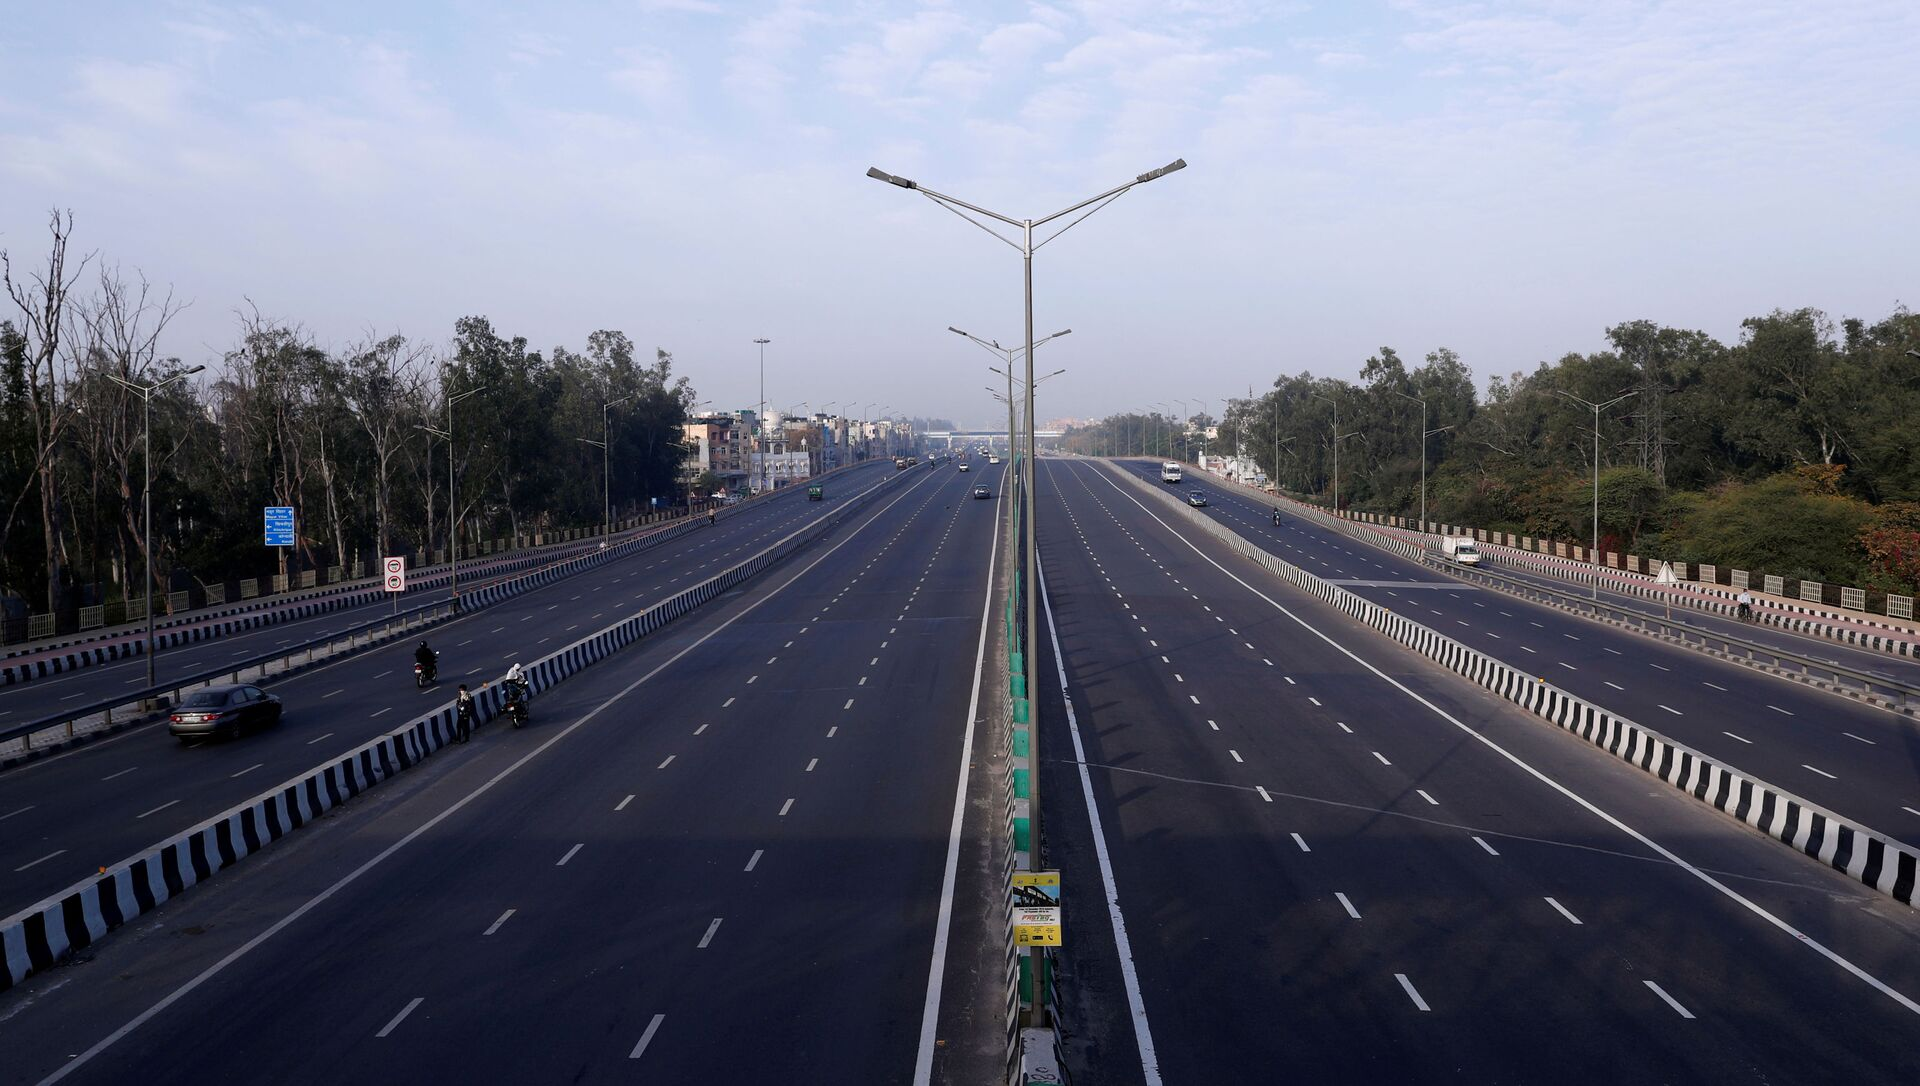 A general view shows an almost empty highway during lockdown by the authorities to limit the spreading of coronavirus disease (COVID-19), in New Delhi, India March 23, 2020. REUTERS/Adnan Abidi - Sputnik International, 1920, 28.07.2021